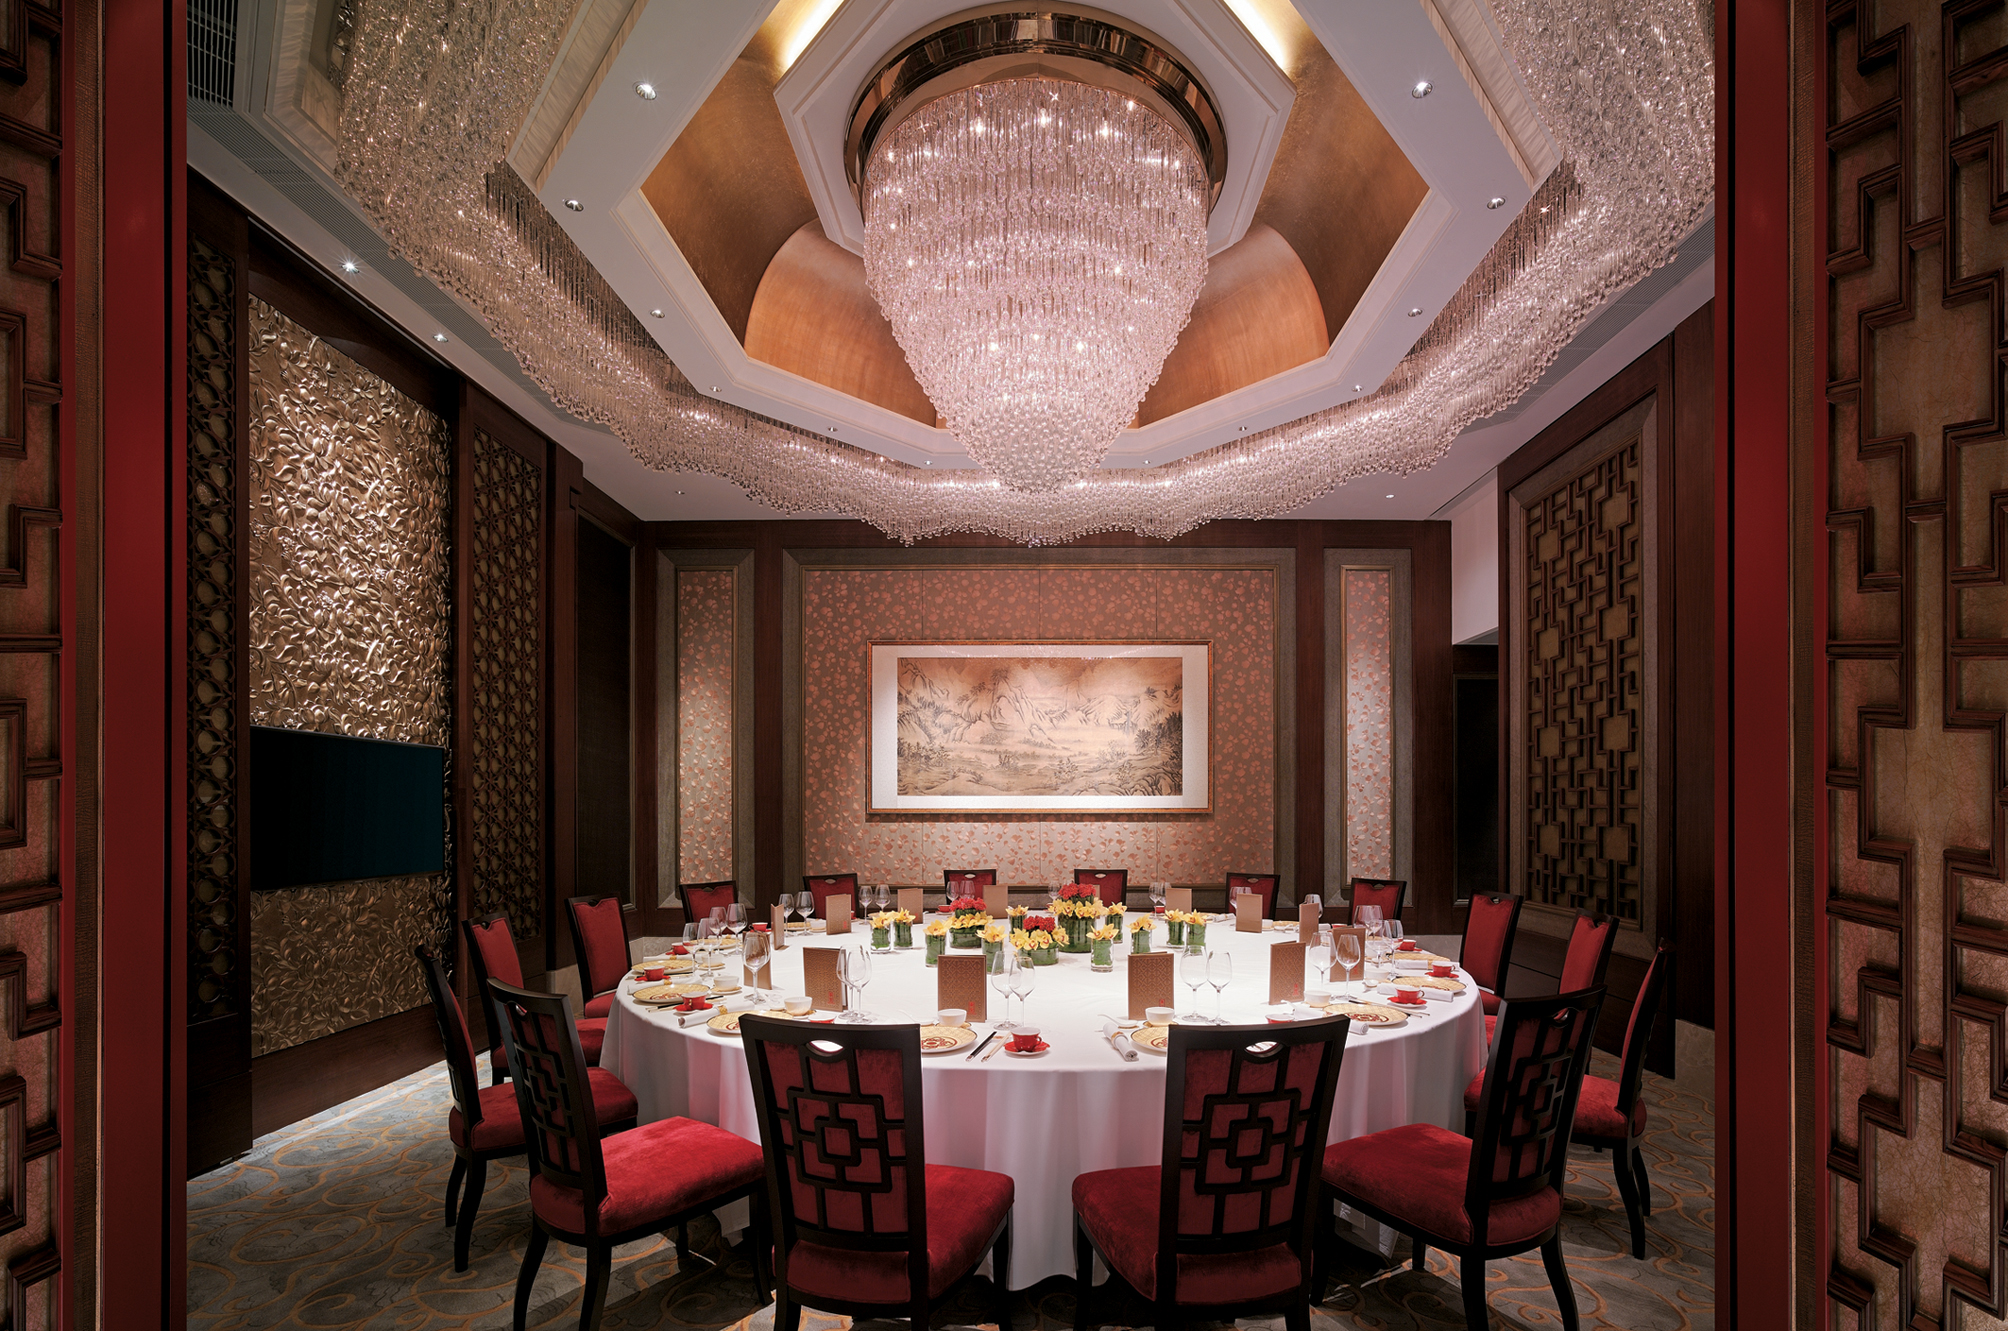 Restaurant Private Room Rental Eden Prairie